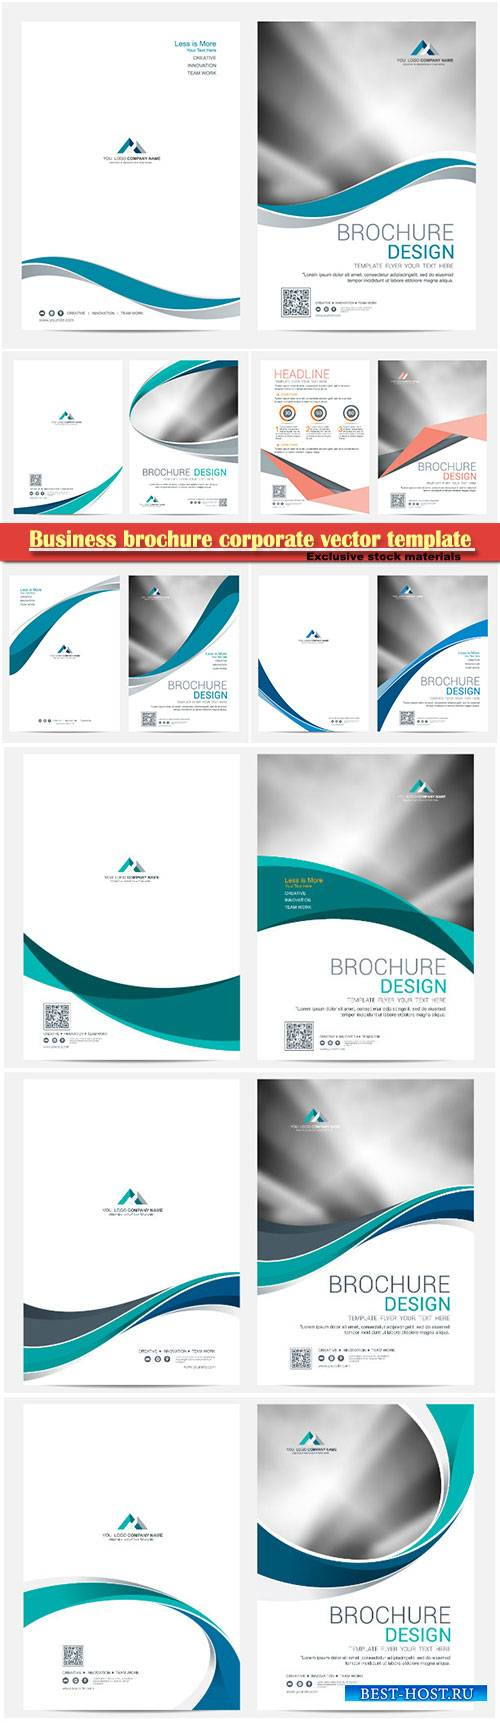 Business brochure corporate vector template, magazine flyer mockup # 24